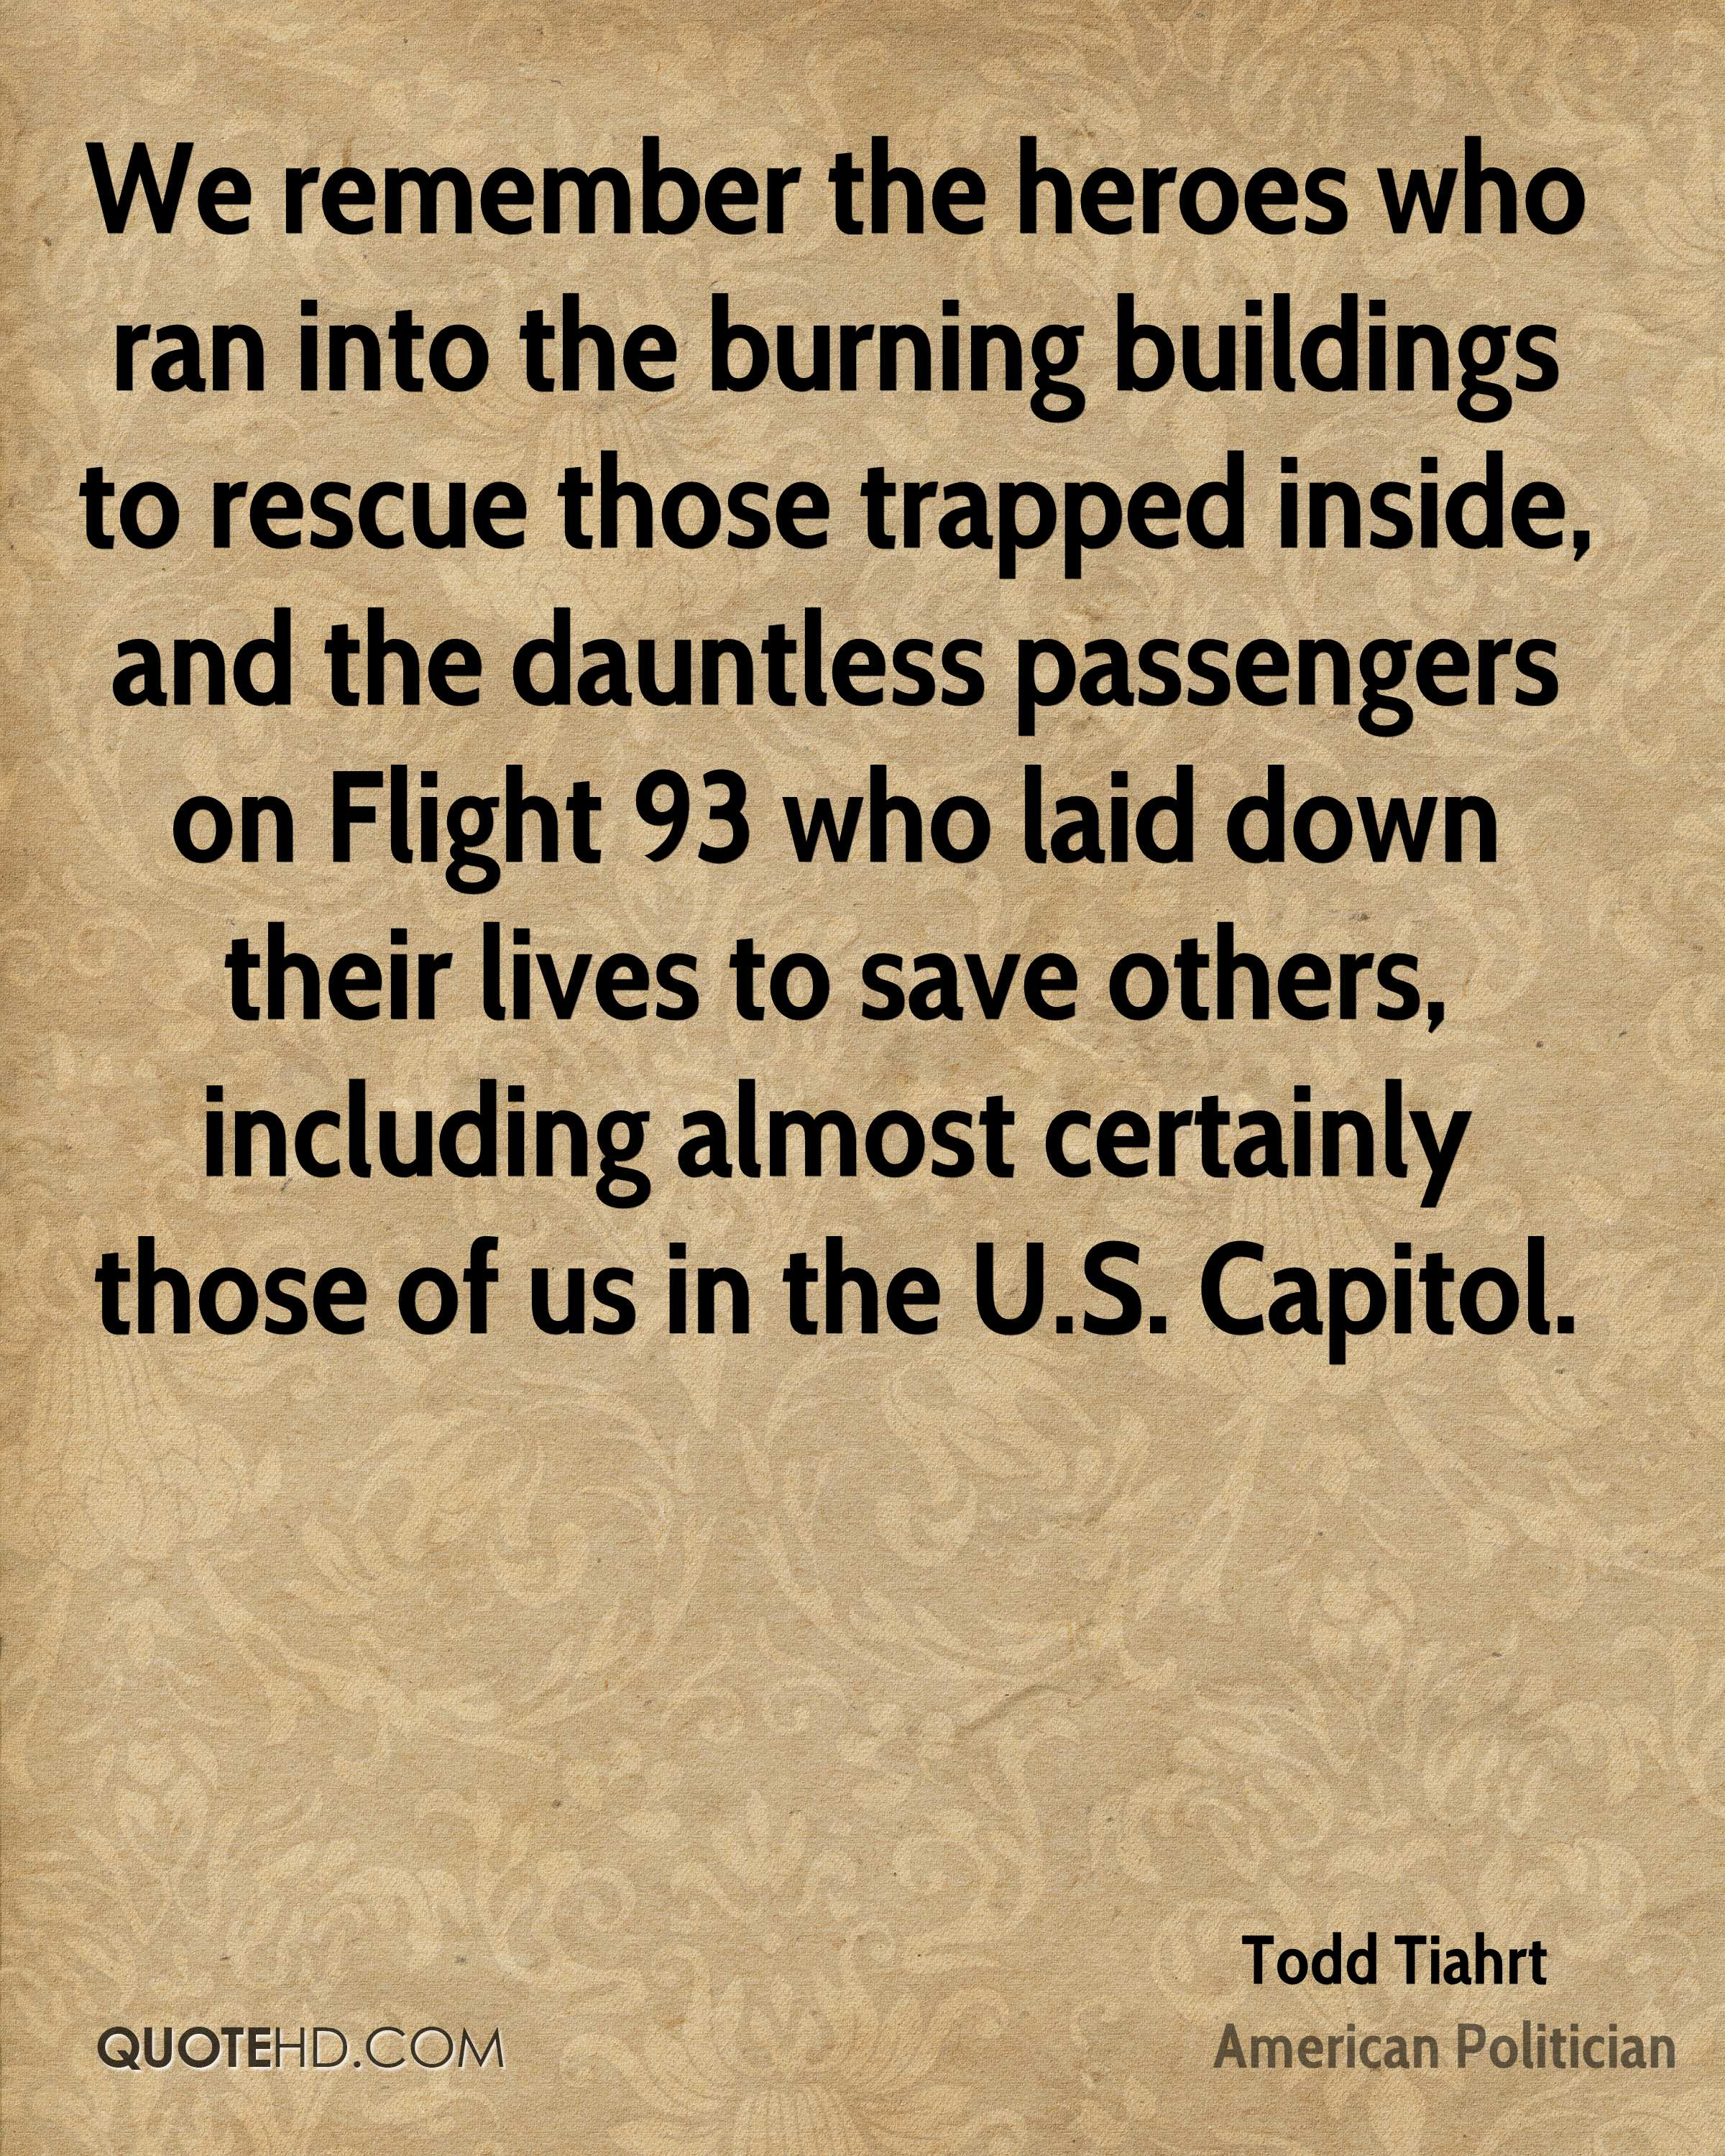 We remember the heroes who ran into the burning buildings to rescue those trapped inside, and the dauntless passengers on Flight 93 who laid down their lives to save others, including almost certainly those of us in the U.S. Capitol.